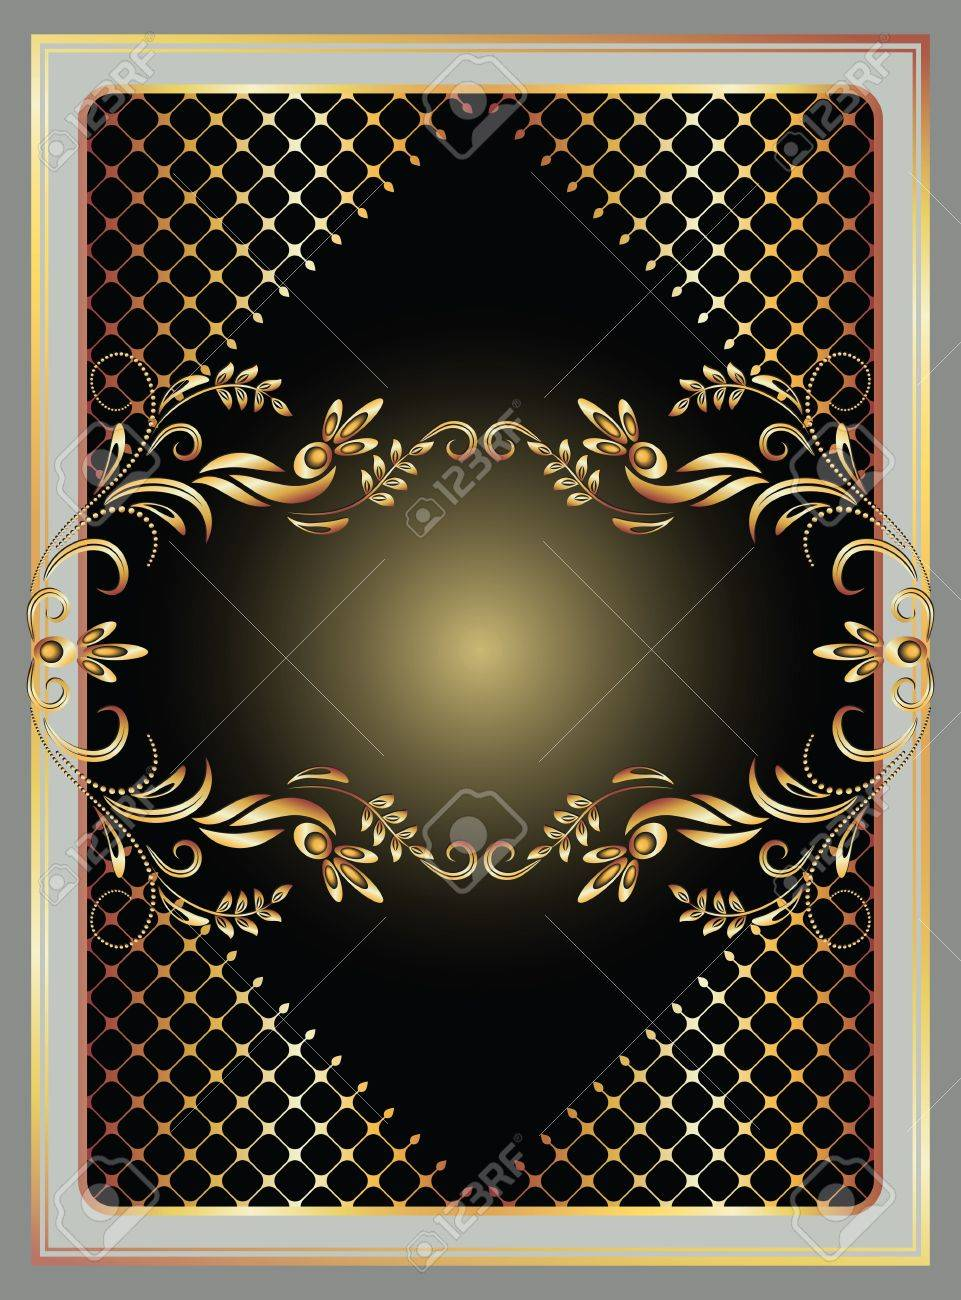 Background with golden ornament for various design artwork Stock Vector - 12469492